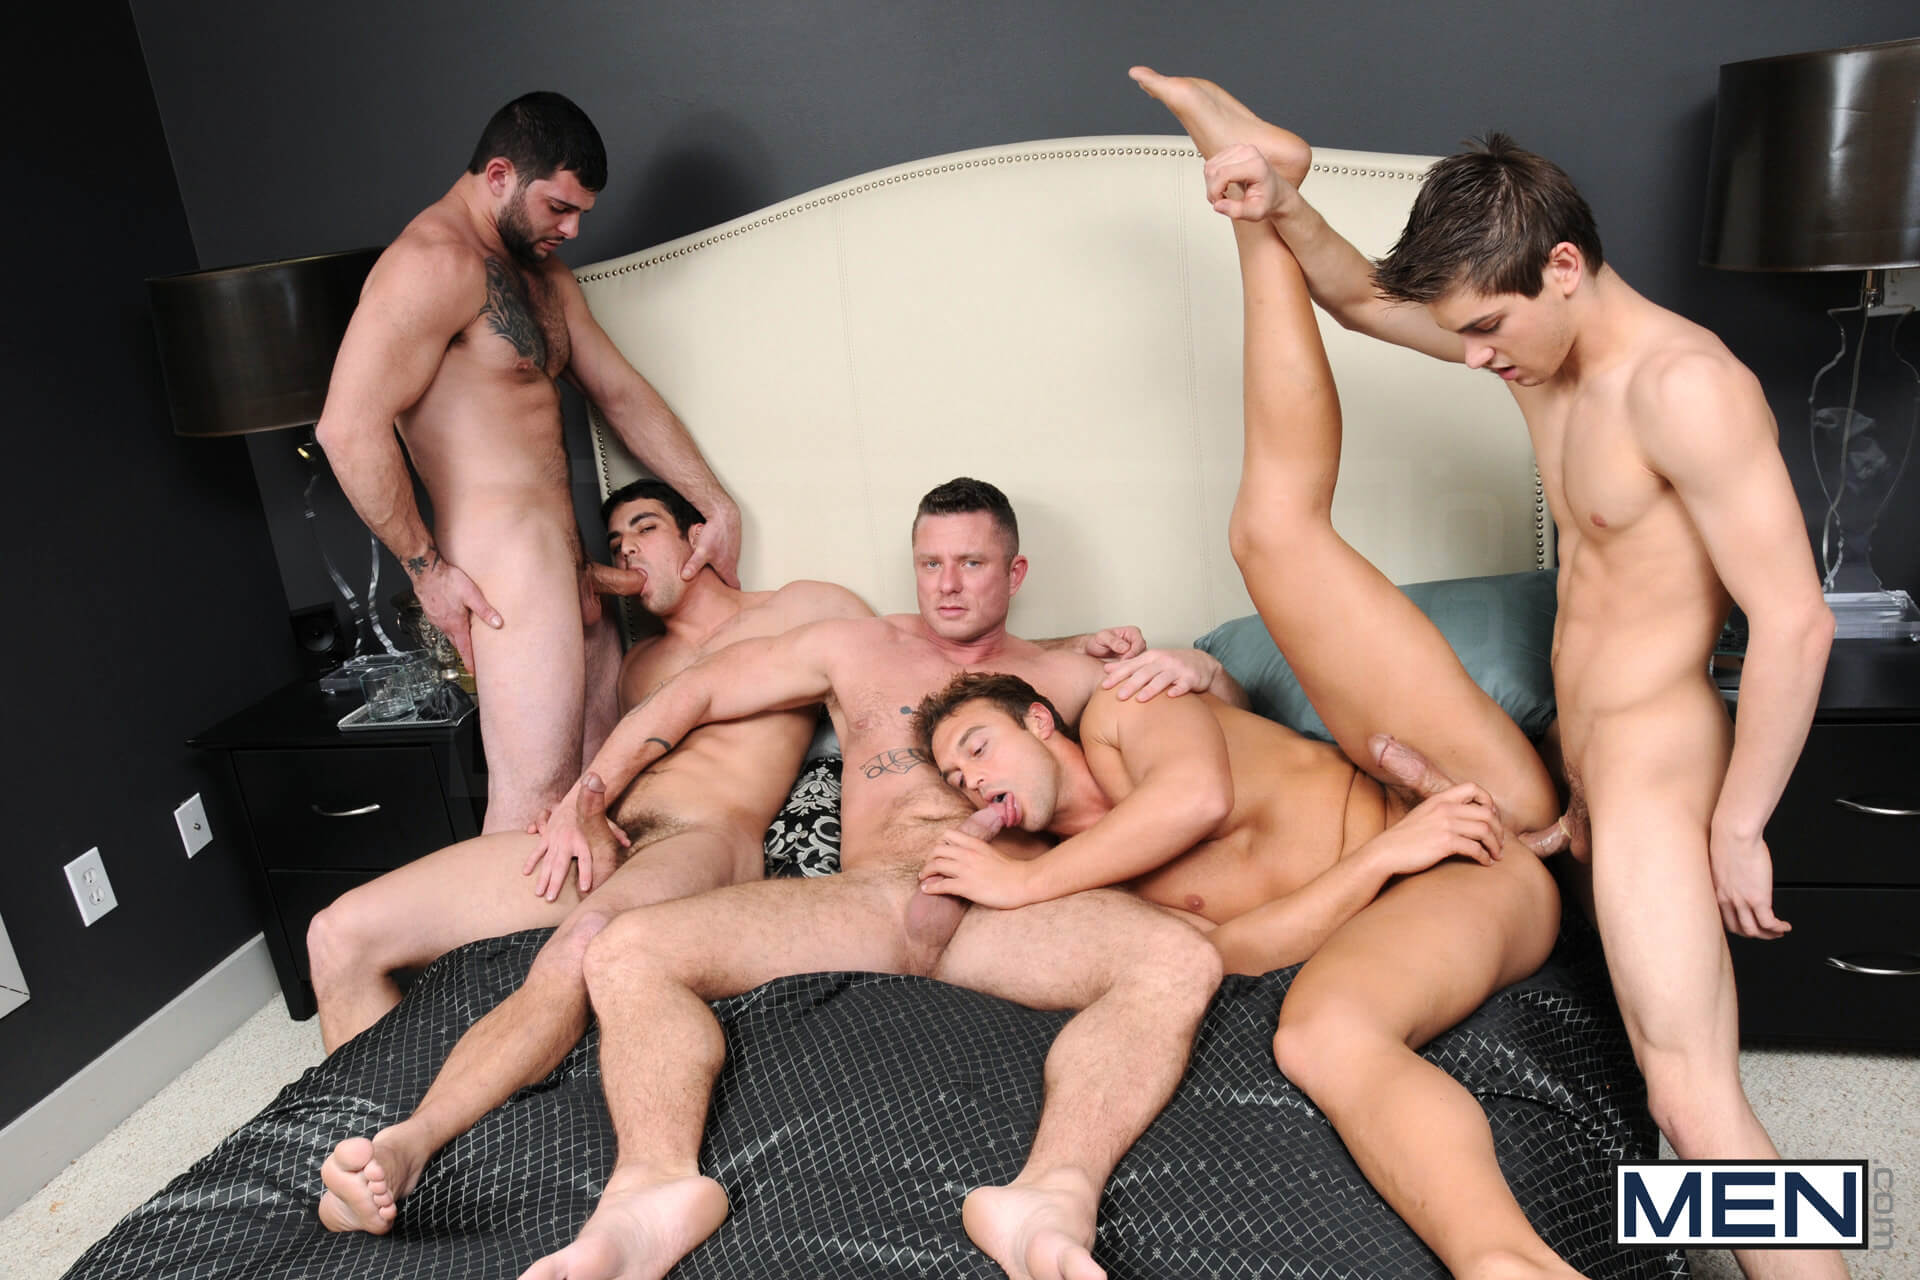 men jizz orgy tops only required charlie harding jack king johnny rapid rocco reed tony paradise gay porn blog image 12